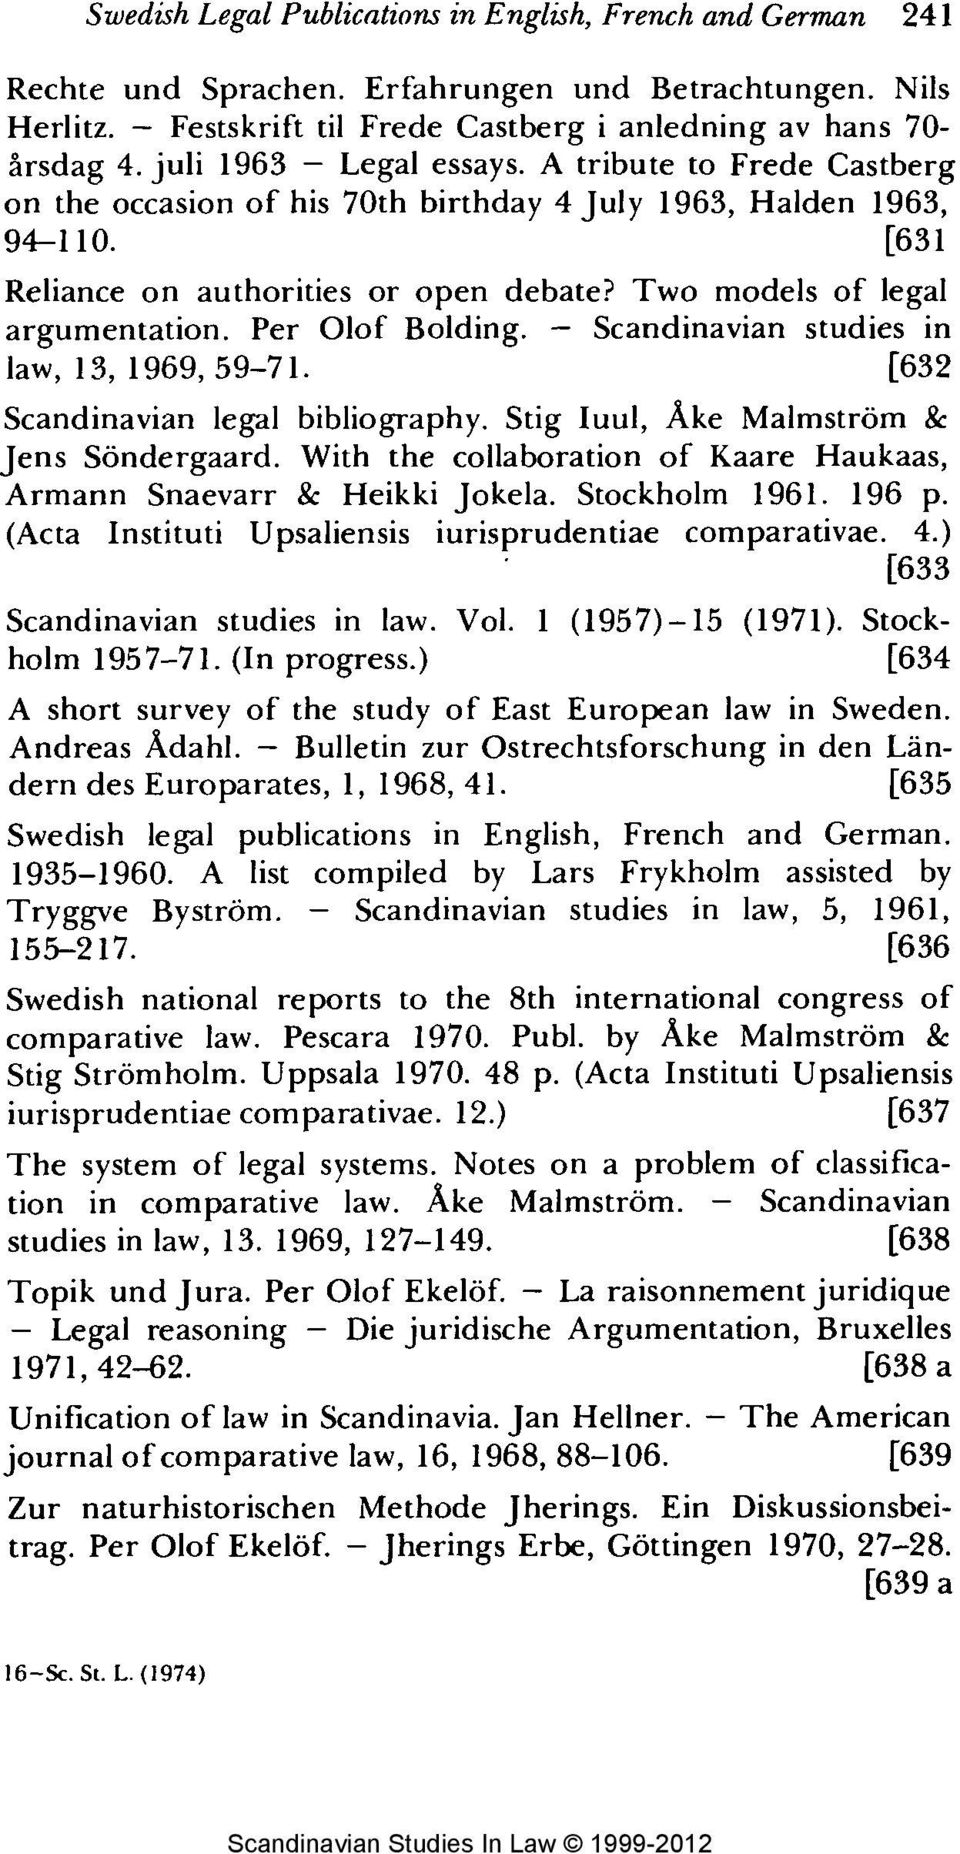 Two models of legal argumentation. Per Olof Bolding. - Scandinavian studies in law, 13, 1969, 59-71. [632 Scandinavian legal bibliography. Stig Iuul, Ake Malmstrom & Jens S6ndergaard.